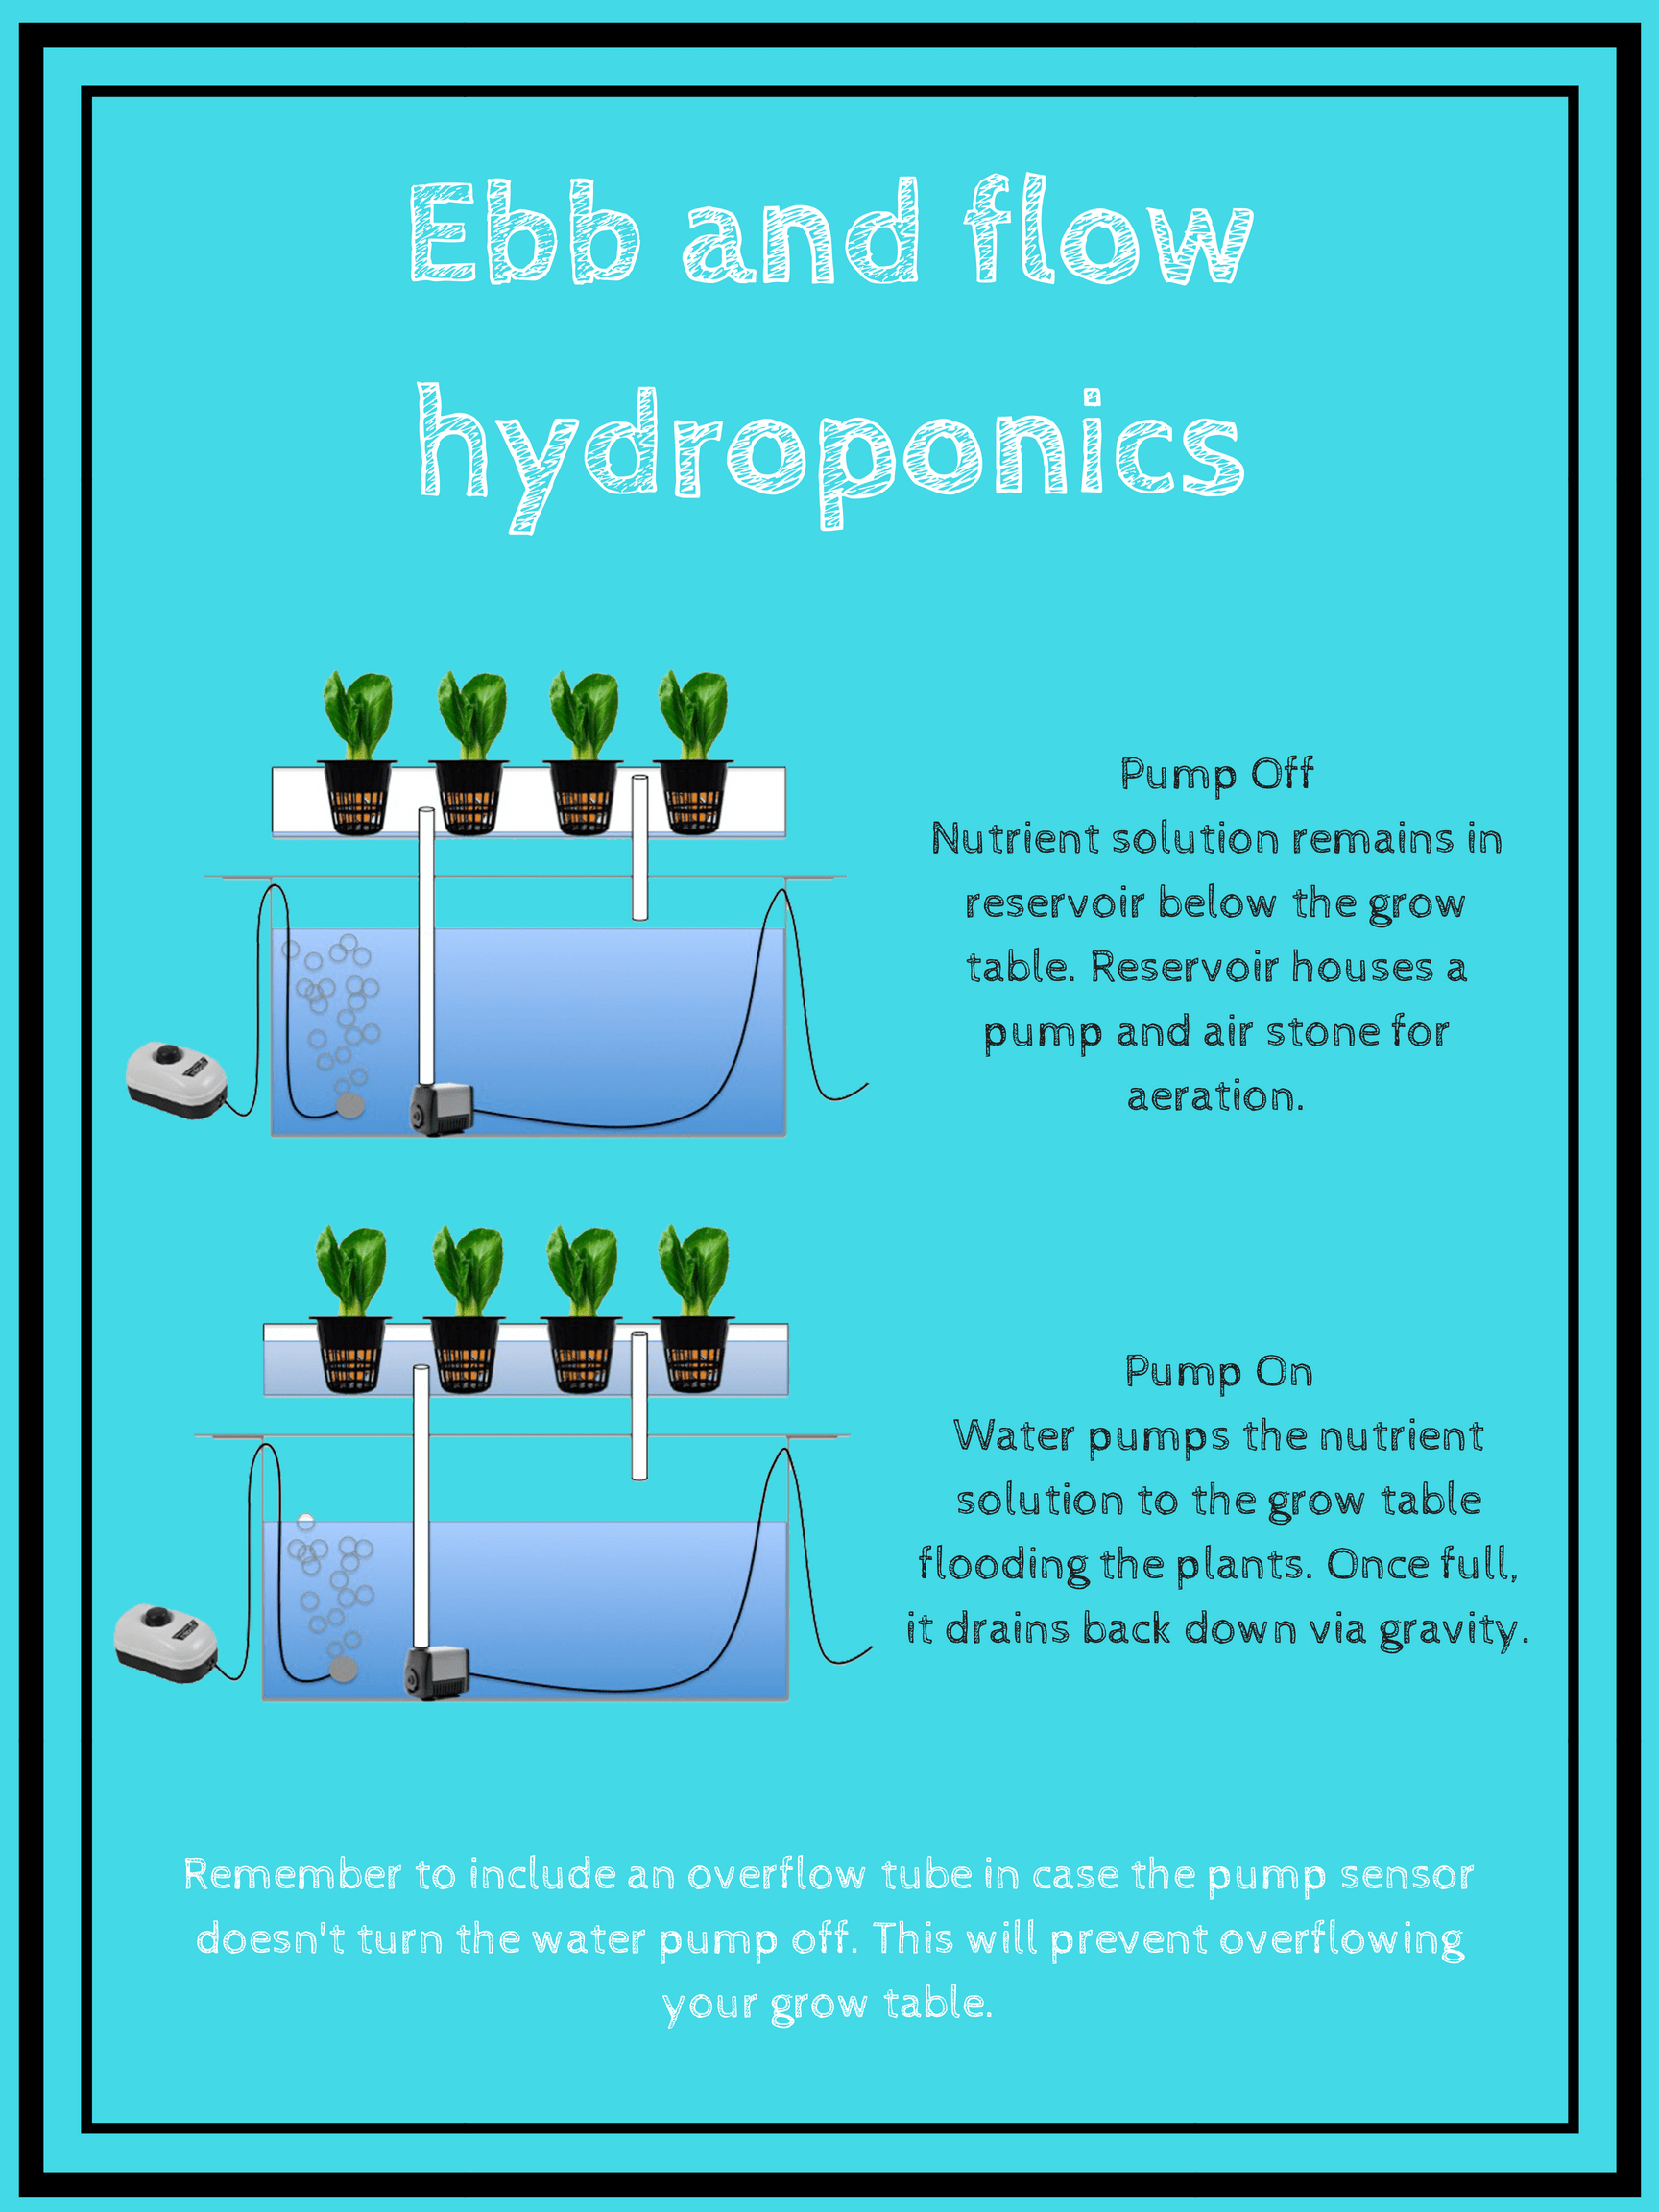 Hydroponic systems: What are they and how do they work